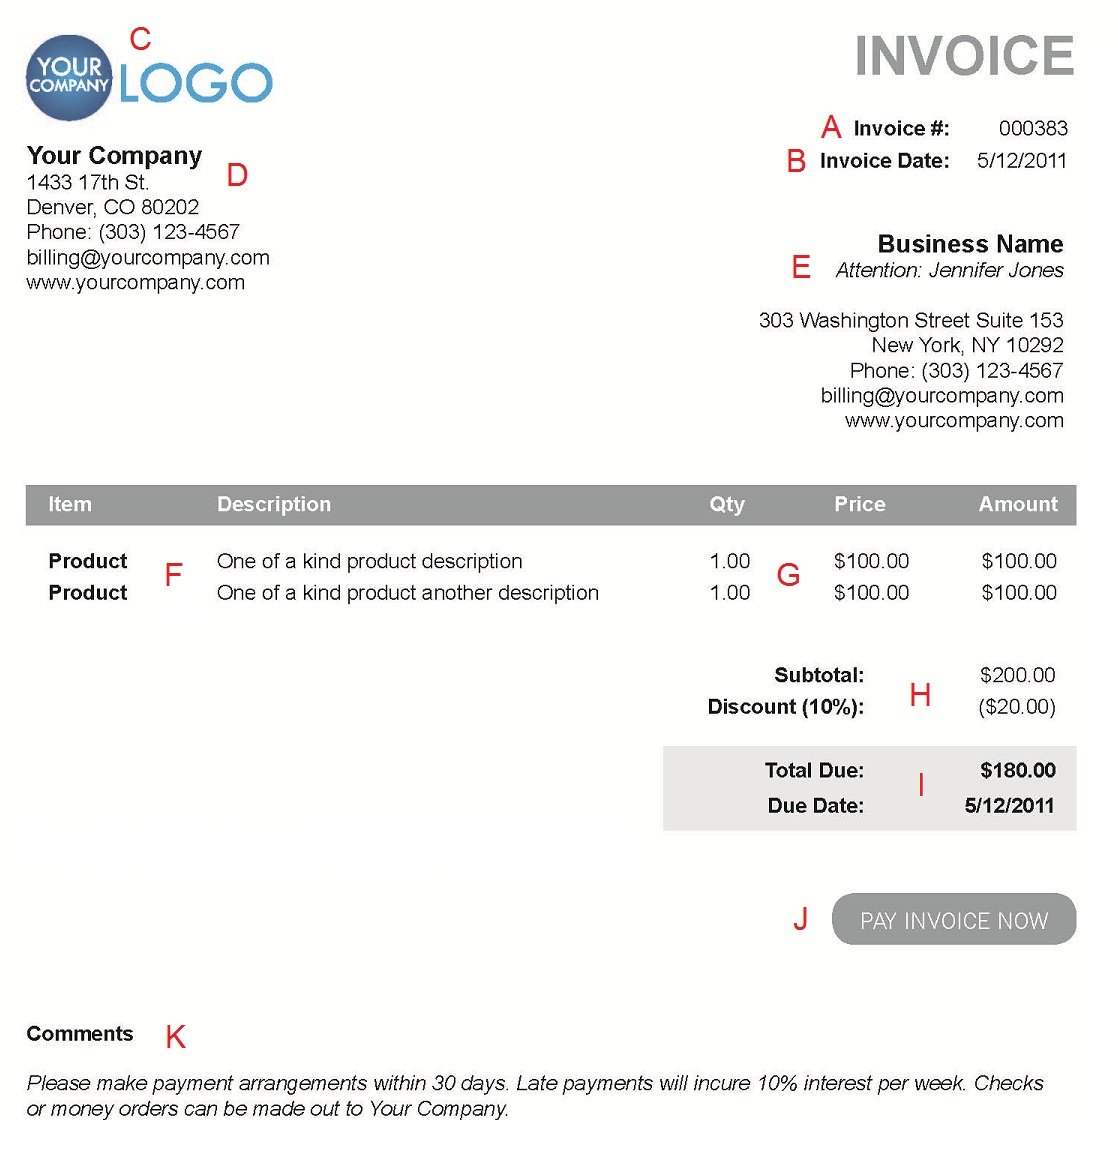 Occupyhistoryus  Surprising The  Different Sections Of An Electronic Payment Invoice With Fetching A  With Breathtaking Invoice System For Small Business Also Lexus Invoice Price In Addition Sales Invoice Example And Consulting Invoice Example As Well As Amazon Invoices Additionally Hvac Service Order Invoice From Paysimplecom With Occupyhistoryus  Fetching The  Different Sections Of An Electronic Payment Invoice With Breathtaking A  And Surprising Invoice System For Small Business Also Lexus Invoice Price In Addition Sales Invoice Example From Paysimplecom